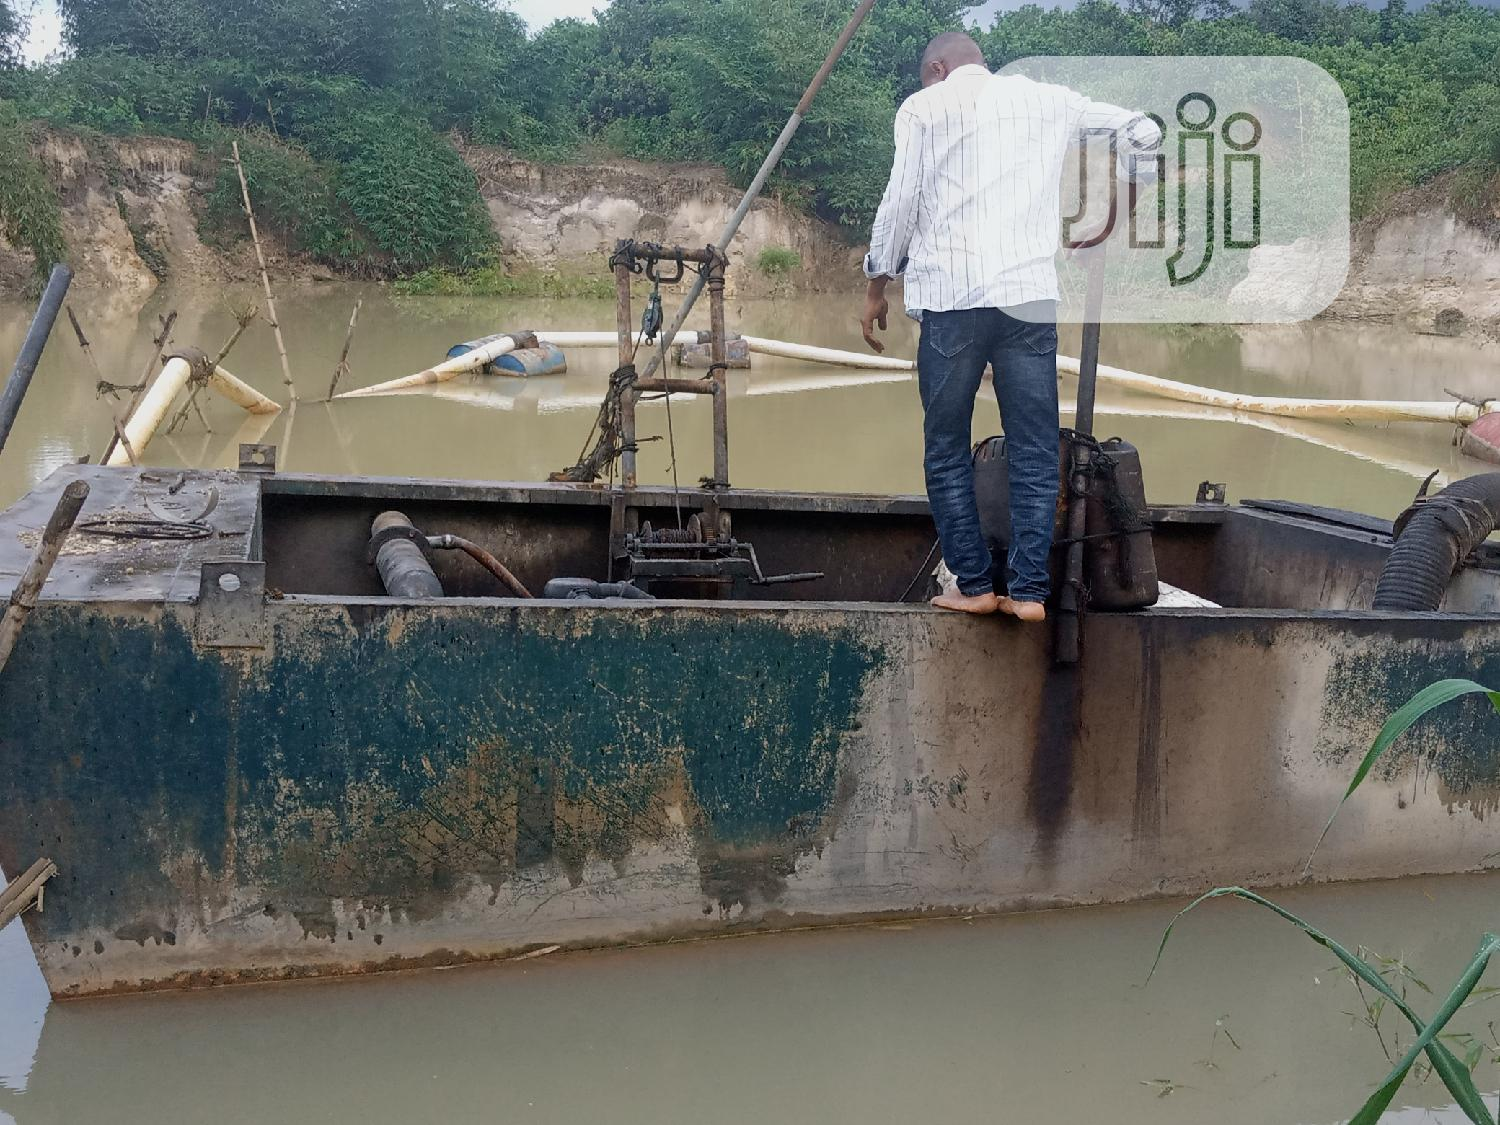 Rolls Royce Perkins 8 Inches Dredger | Watercraft & Boats for sale in Abak, Akwa Ibom State, Nigeria